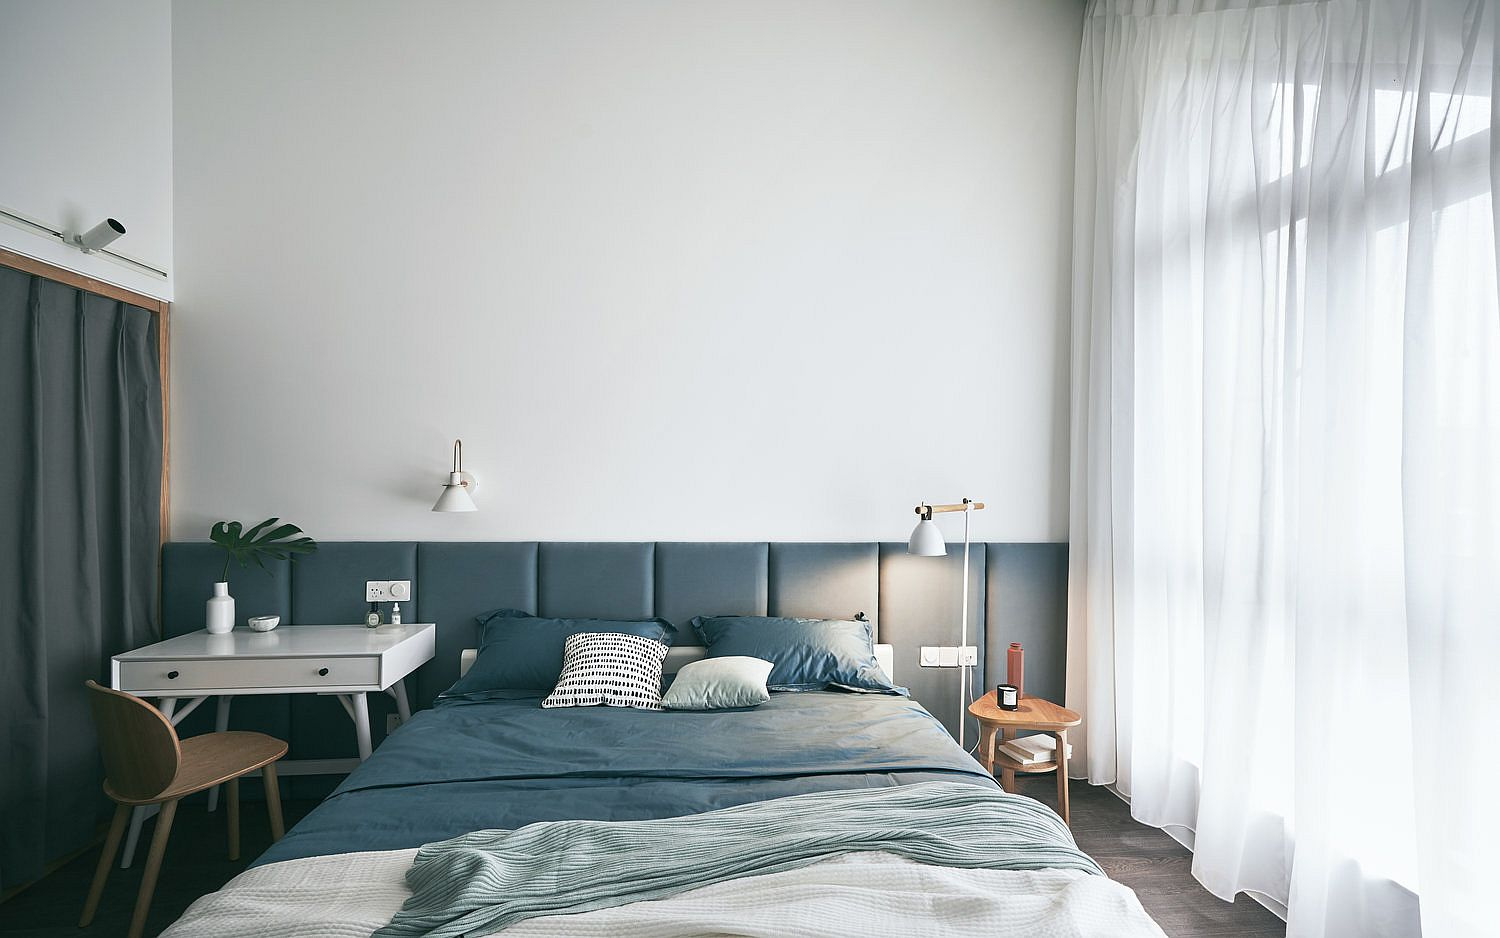 Tufted headboard wall for the contemporary bedroom in white